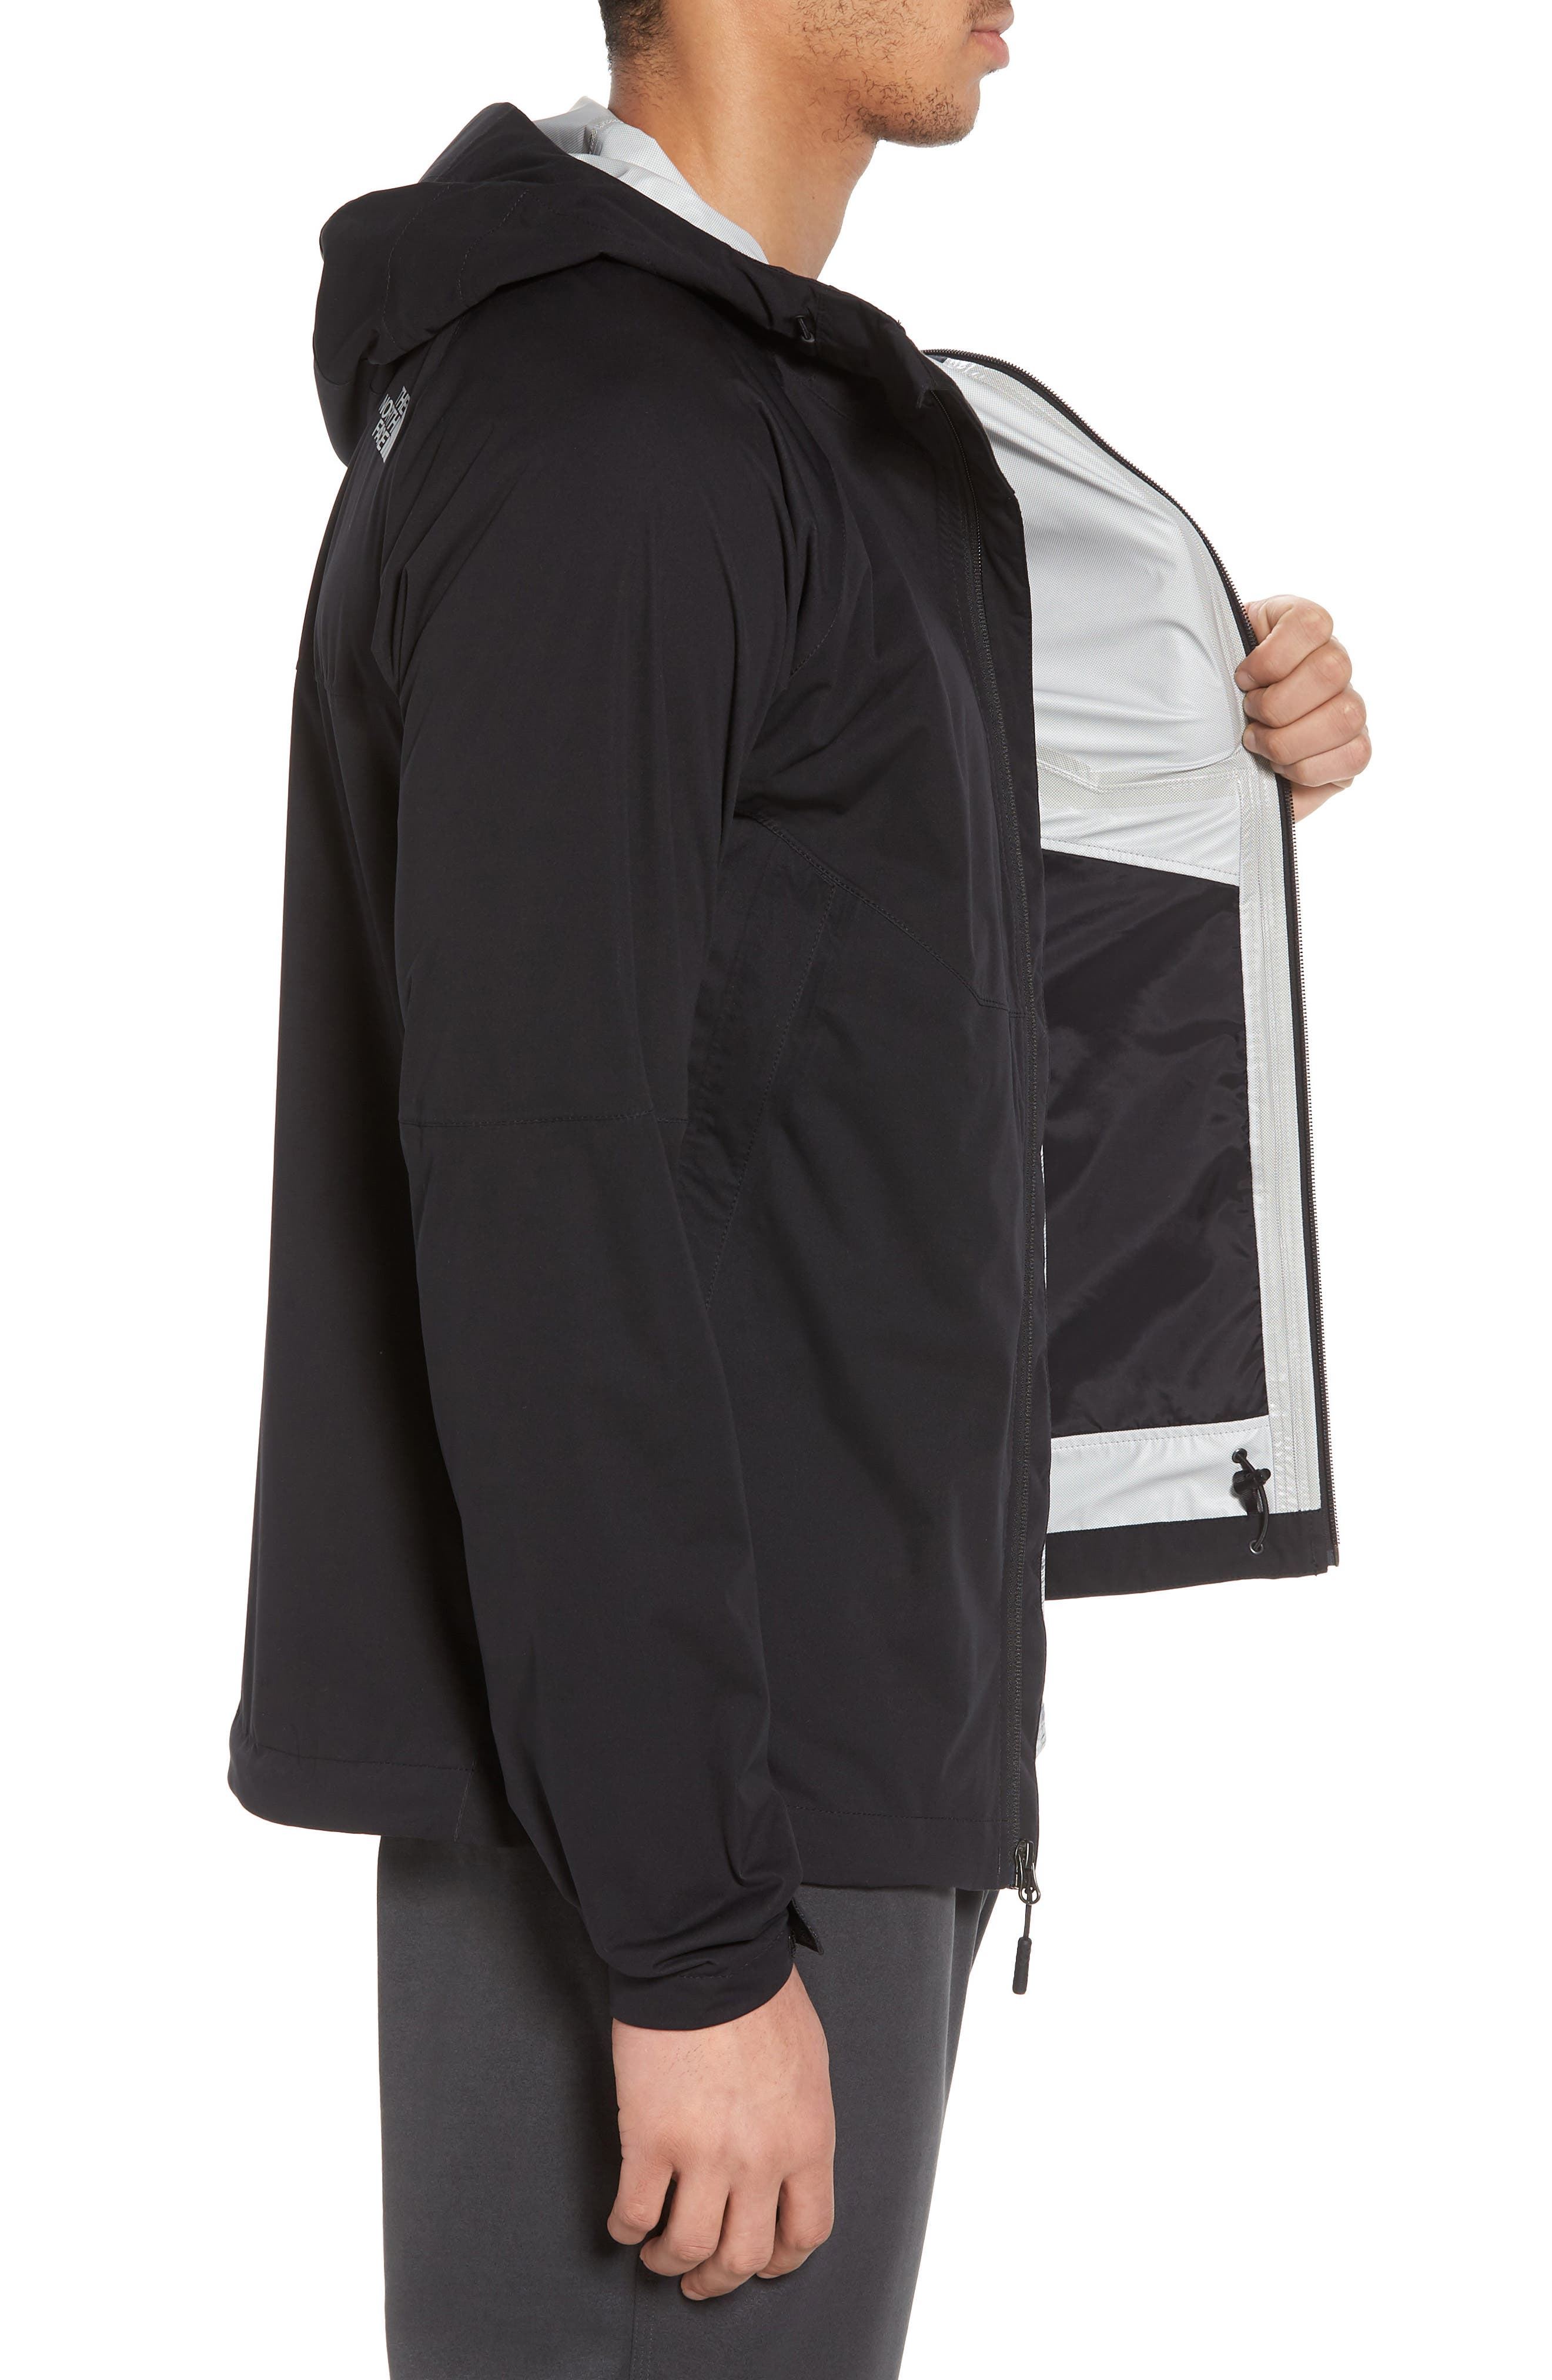 Allproof Stretch Hooded Rain Jacket,                             Alternate thumbnail 3, color,                             Tnf Black